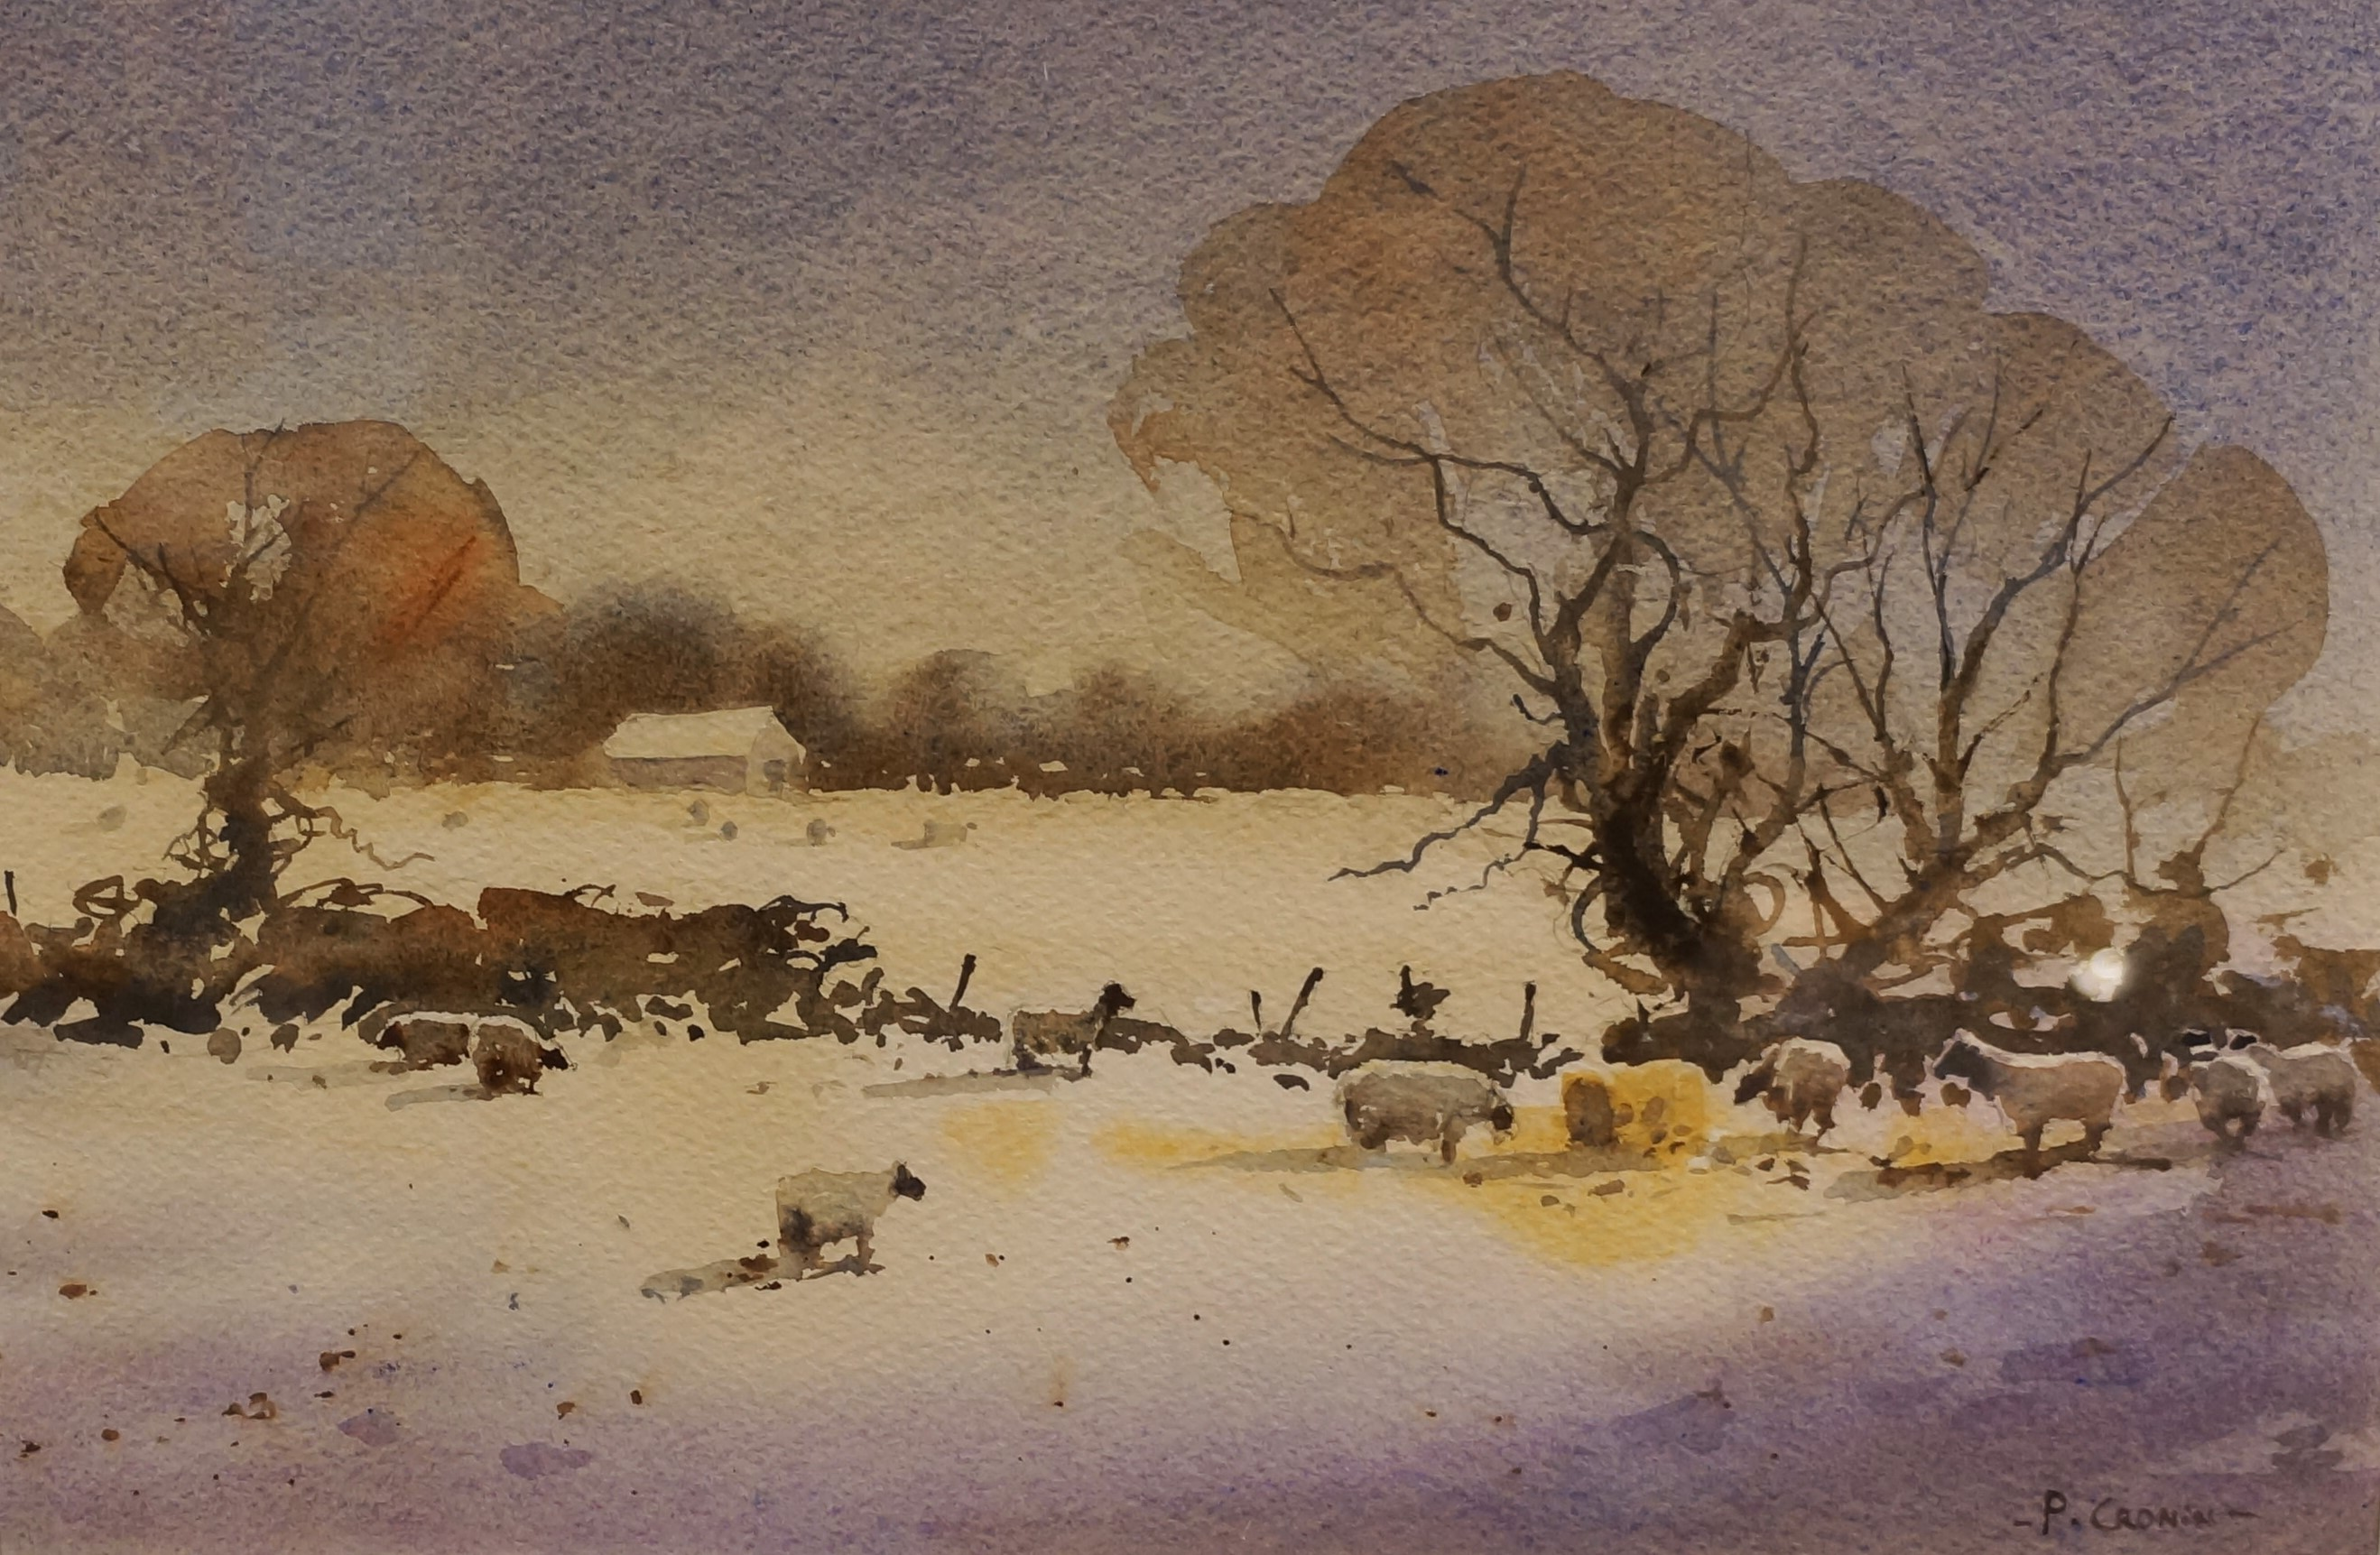 Peter Cronin Pure Watercolour Common Ground By Roberta